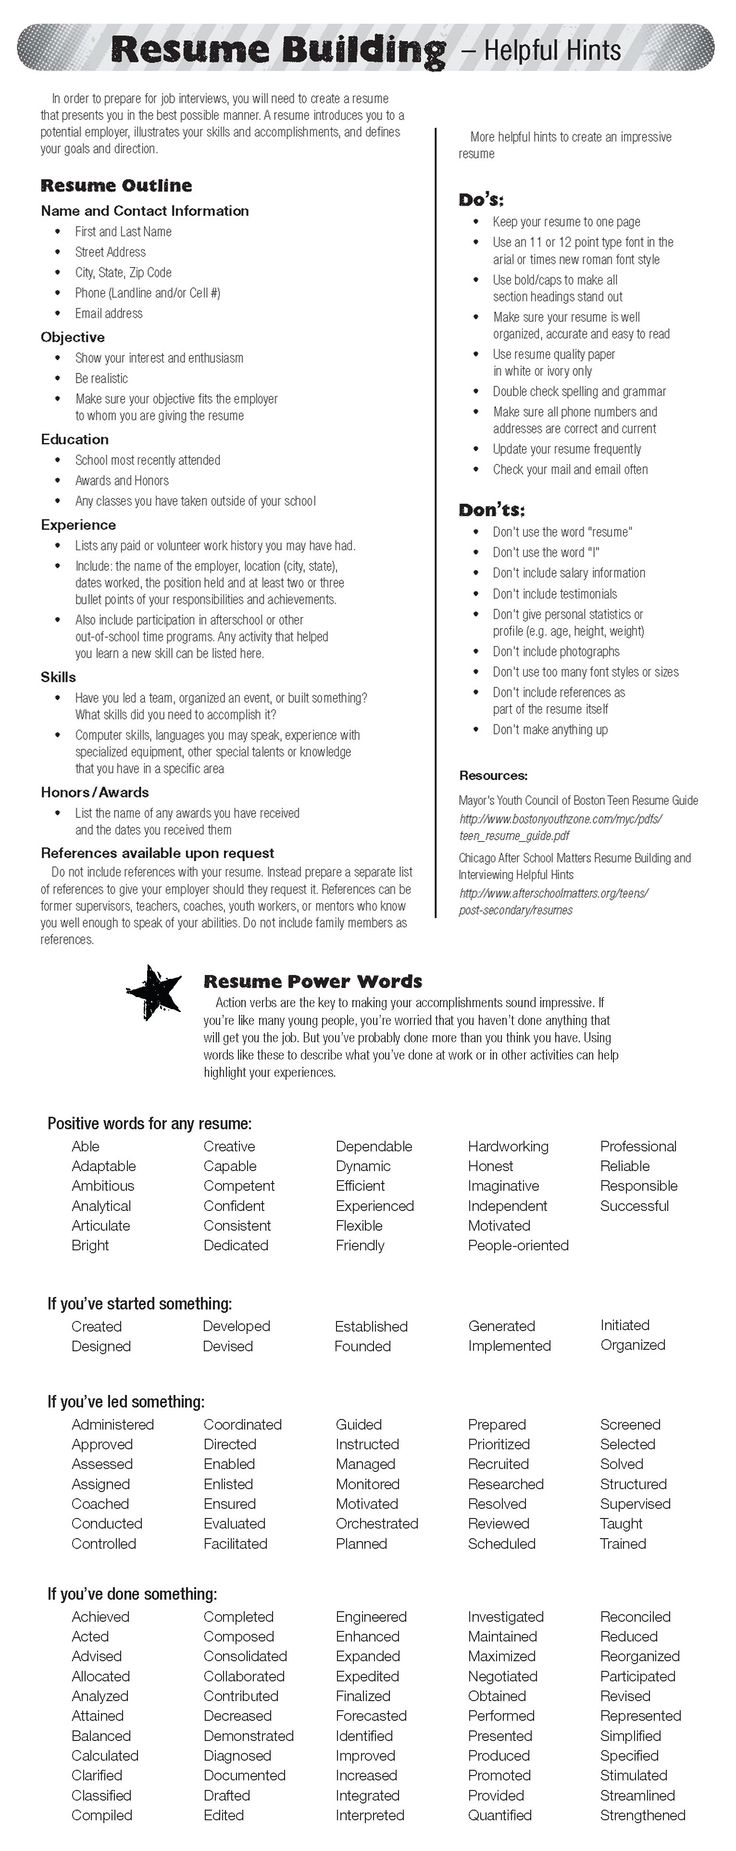 40 best resume images on pinterest resume tips resume ideas and